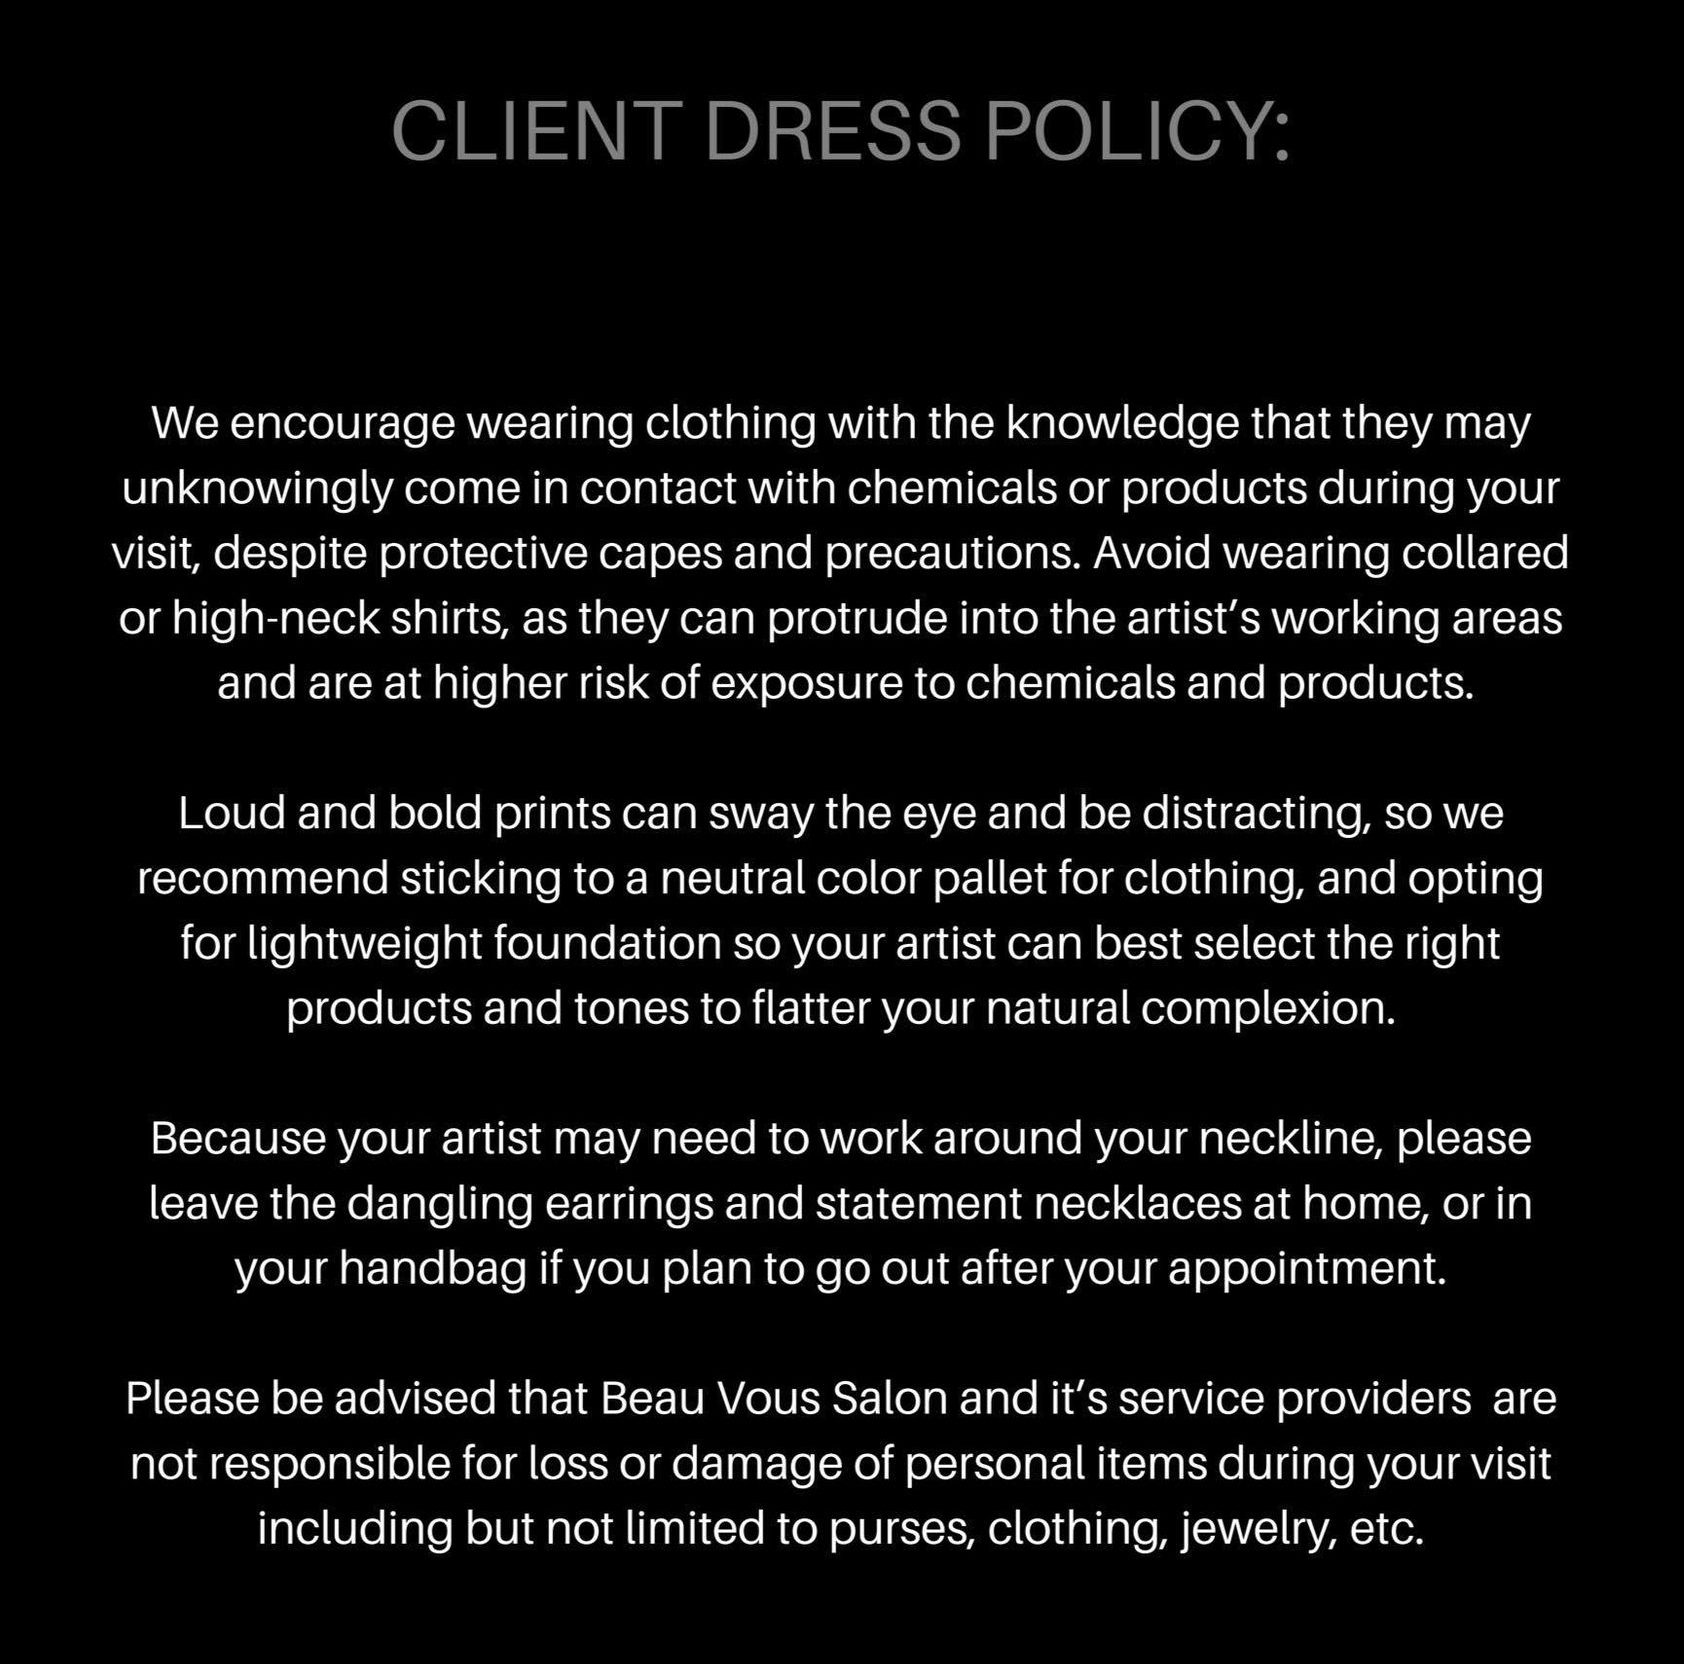 Client Dress Policy